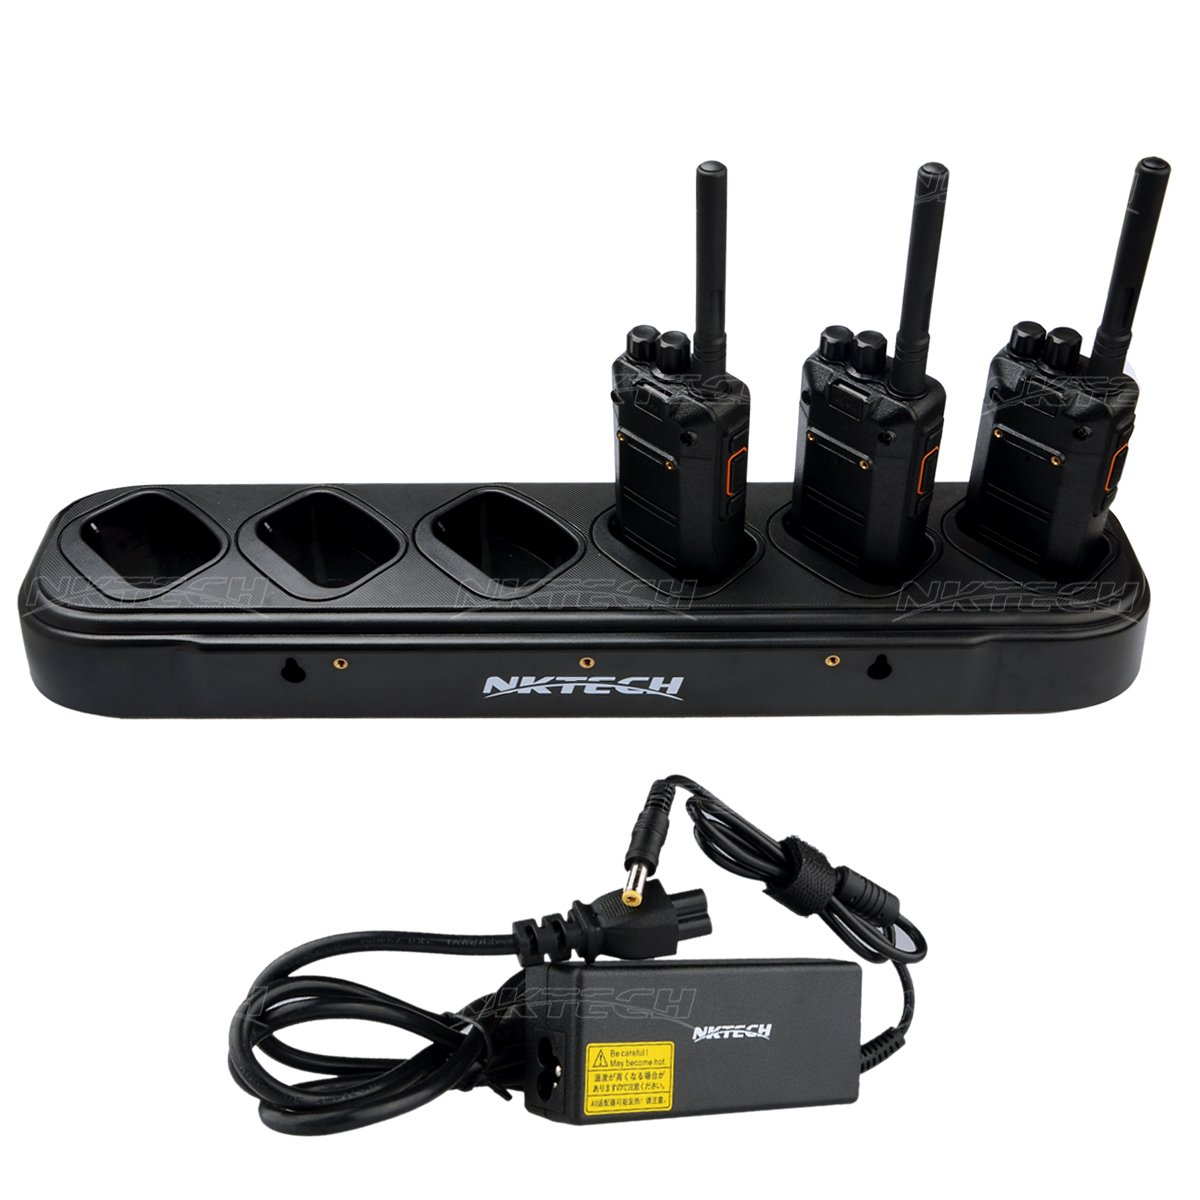 NKTECH 6-Way Six-Way Universal Rapid Multi Charger For TYT DMR MD-280 MD-280 Plus MD-380 Two-Way Radio Walkie Talkie Pack of 2 by NKTECH (Image #2)